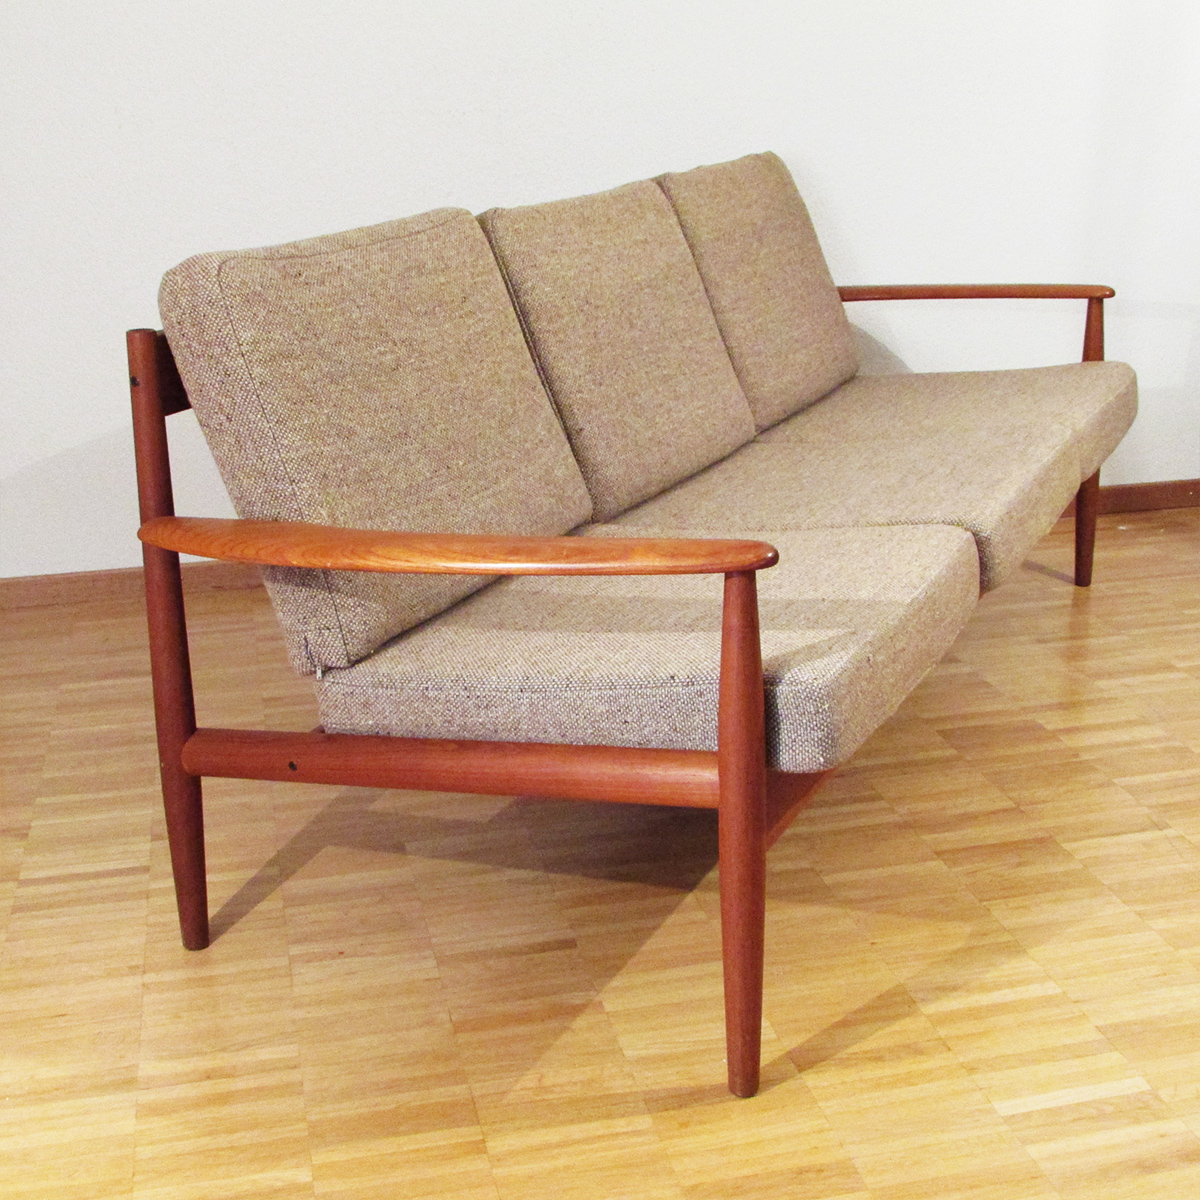 Grete Jalk sofa for Cado | Artichoke Vintage Furniture